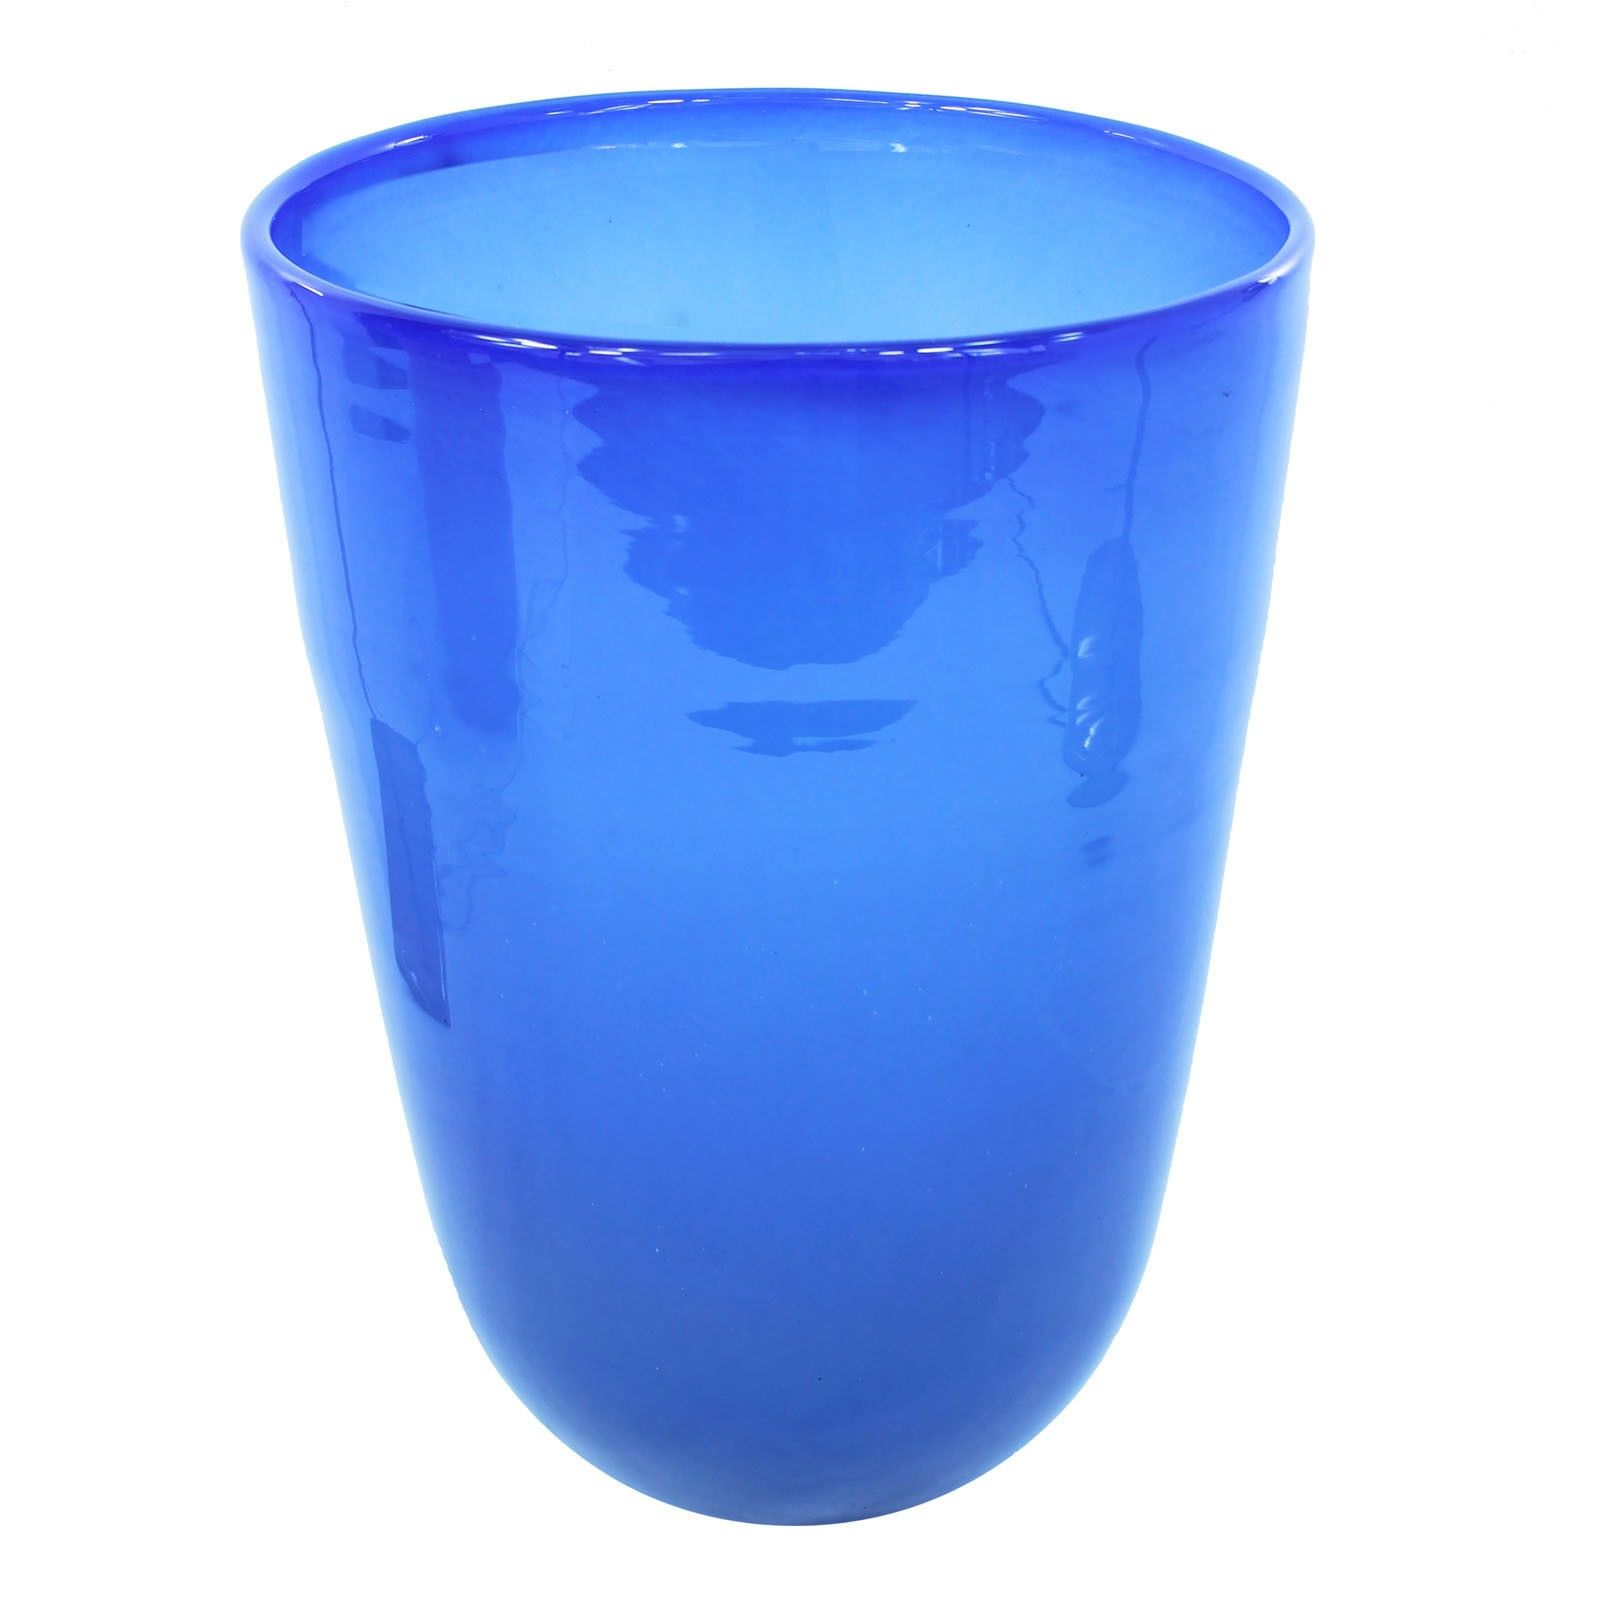 This listing is for one Home Decoration Handmade Royal Blue Extra Large Thick Walled Recycled Glass Vase, H = 33 cm. Price £49.99